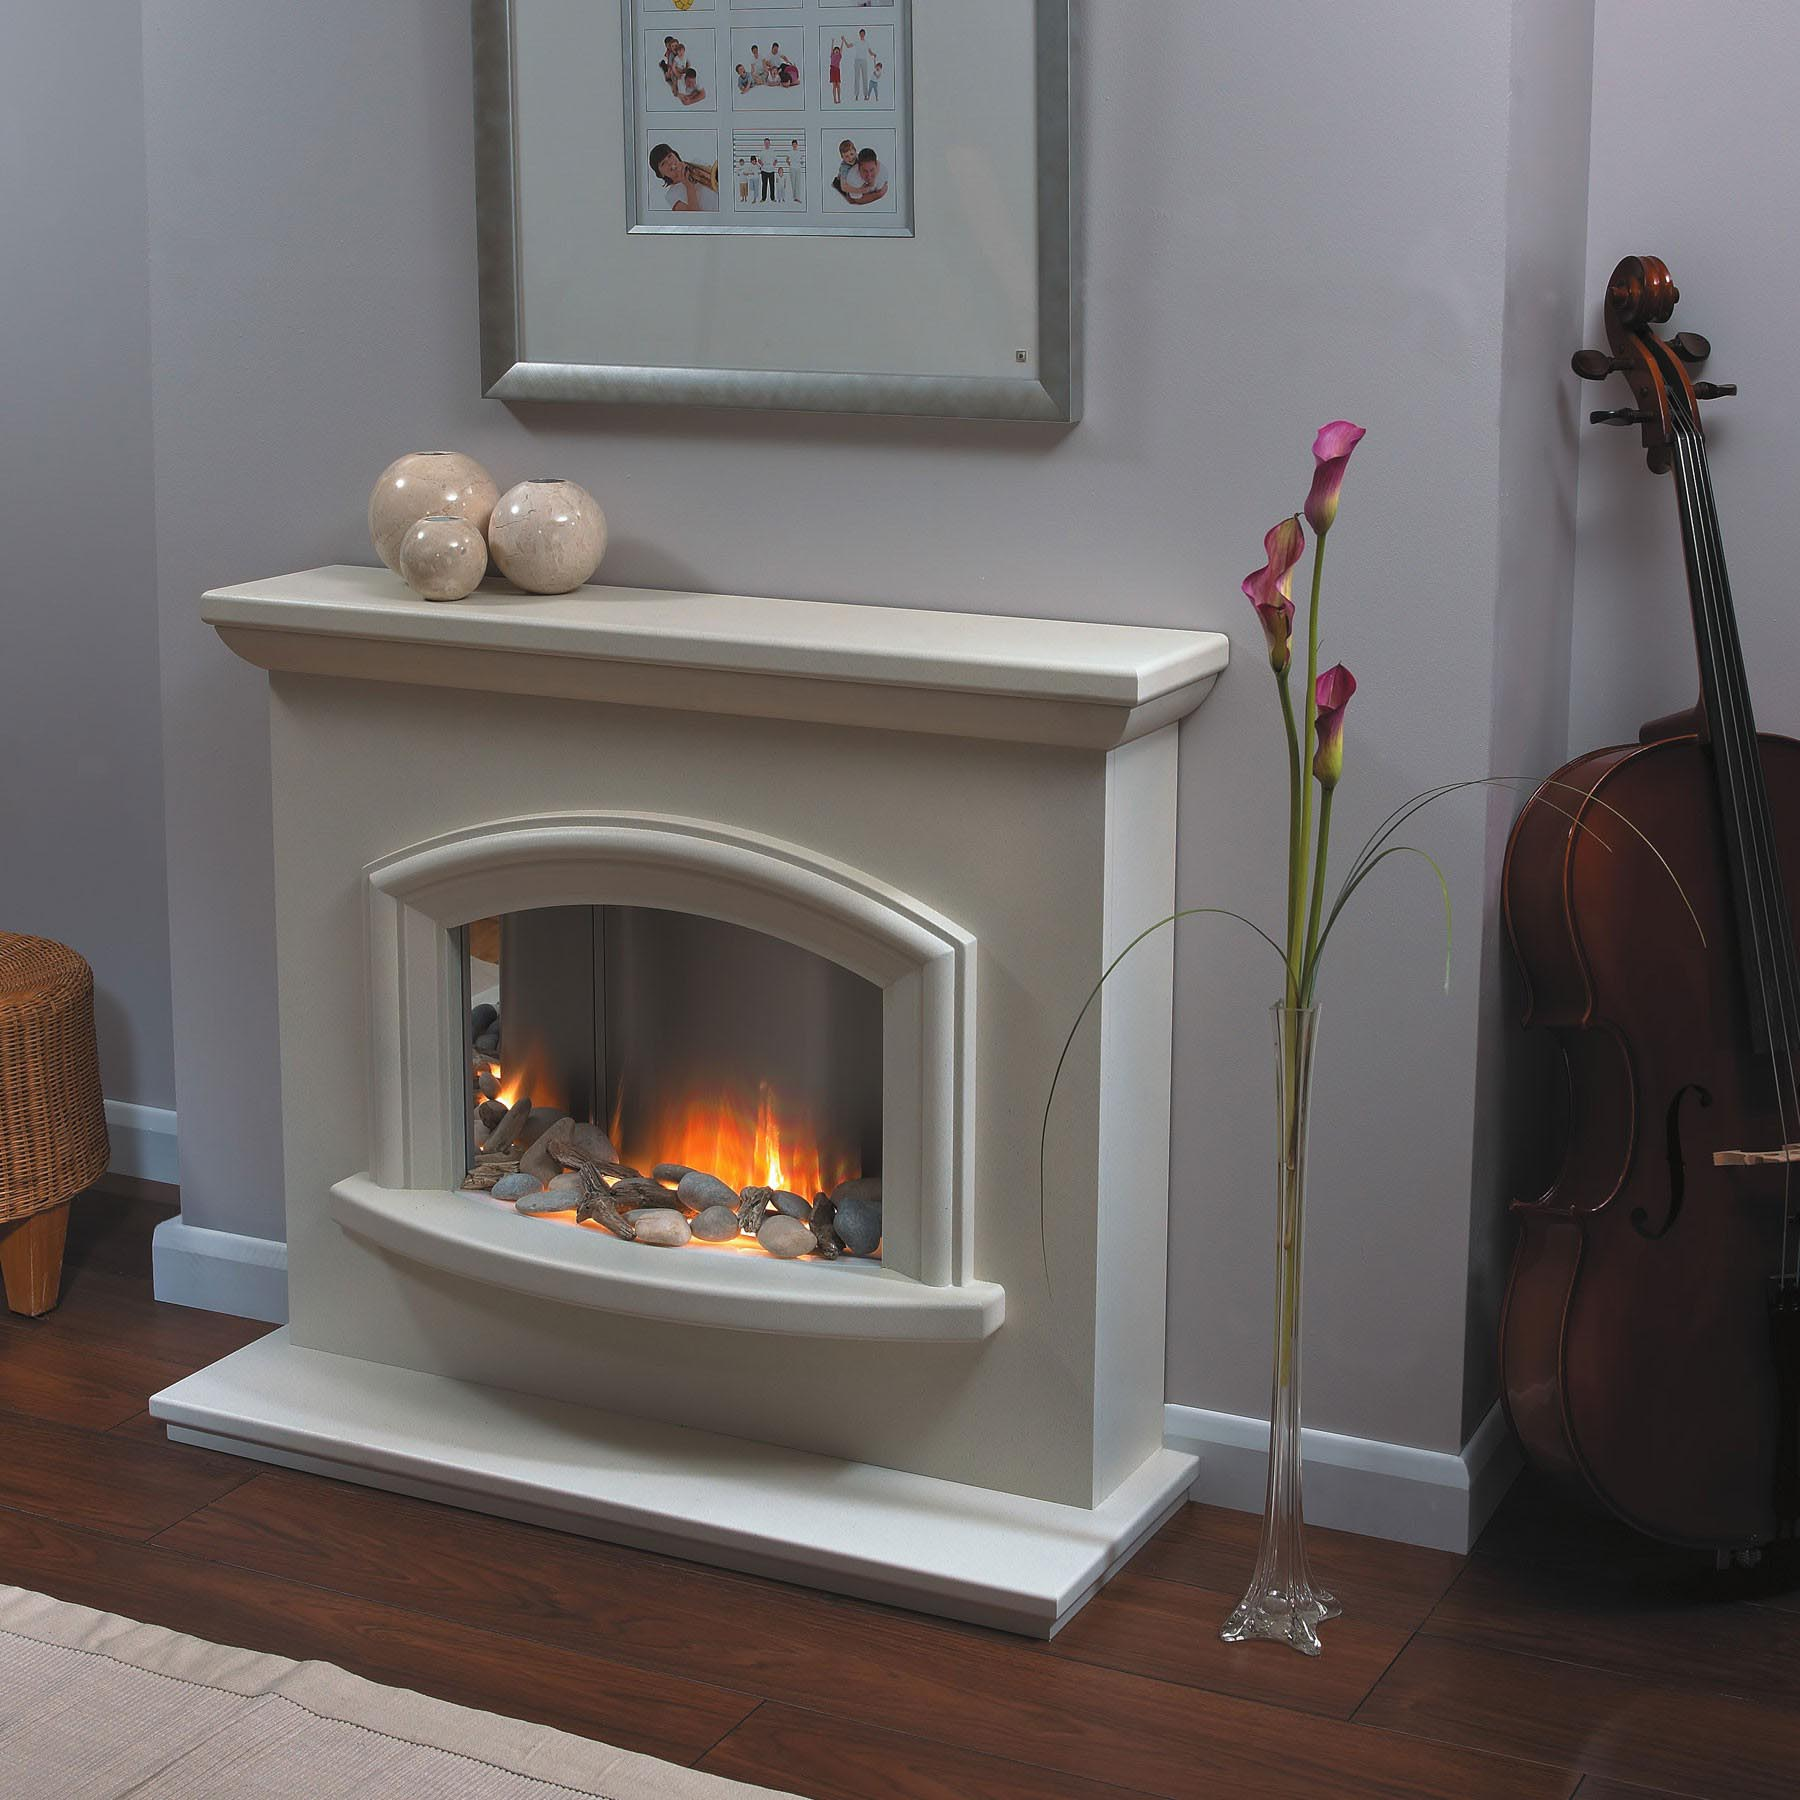 Electric fireplace designs is this an electric fireplace - Choosing the right white electric fireplace for you ...